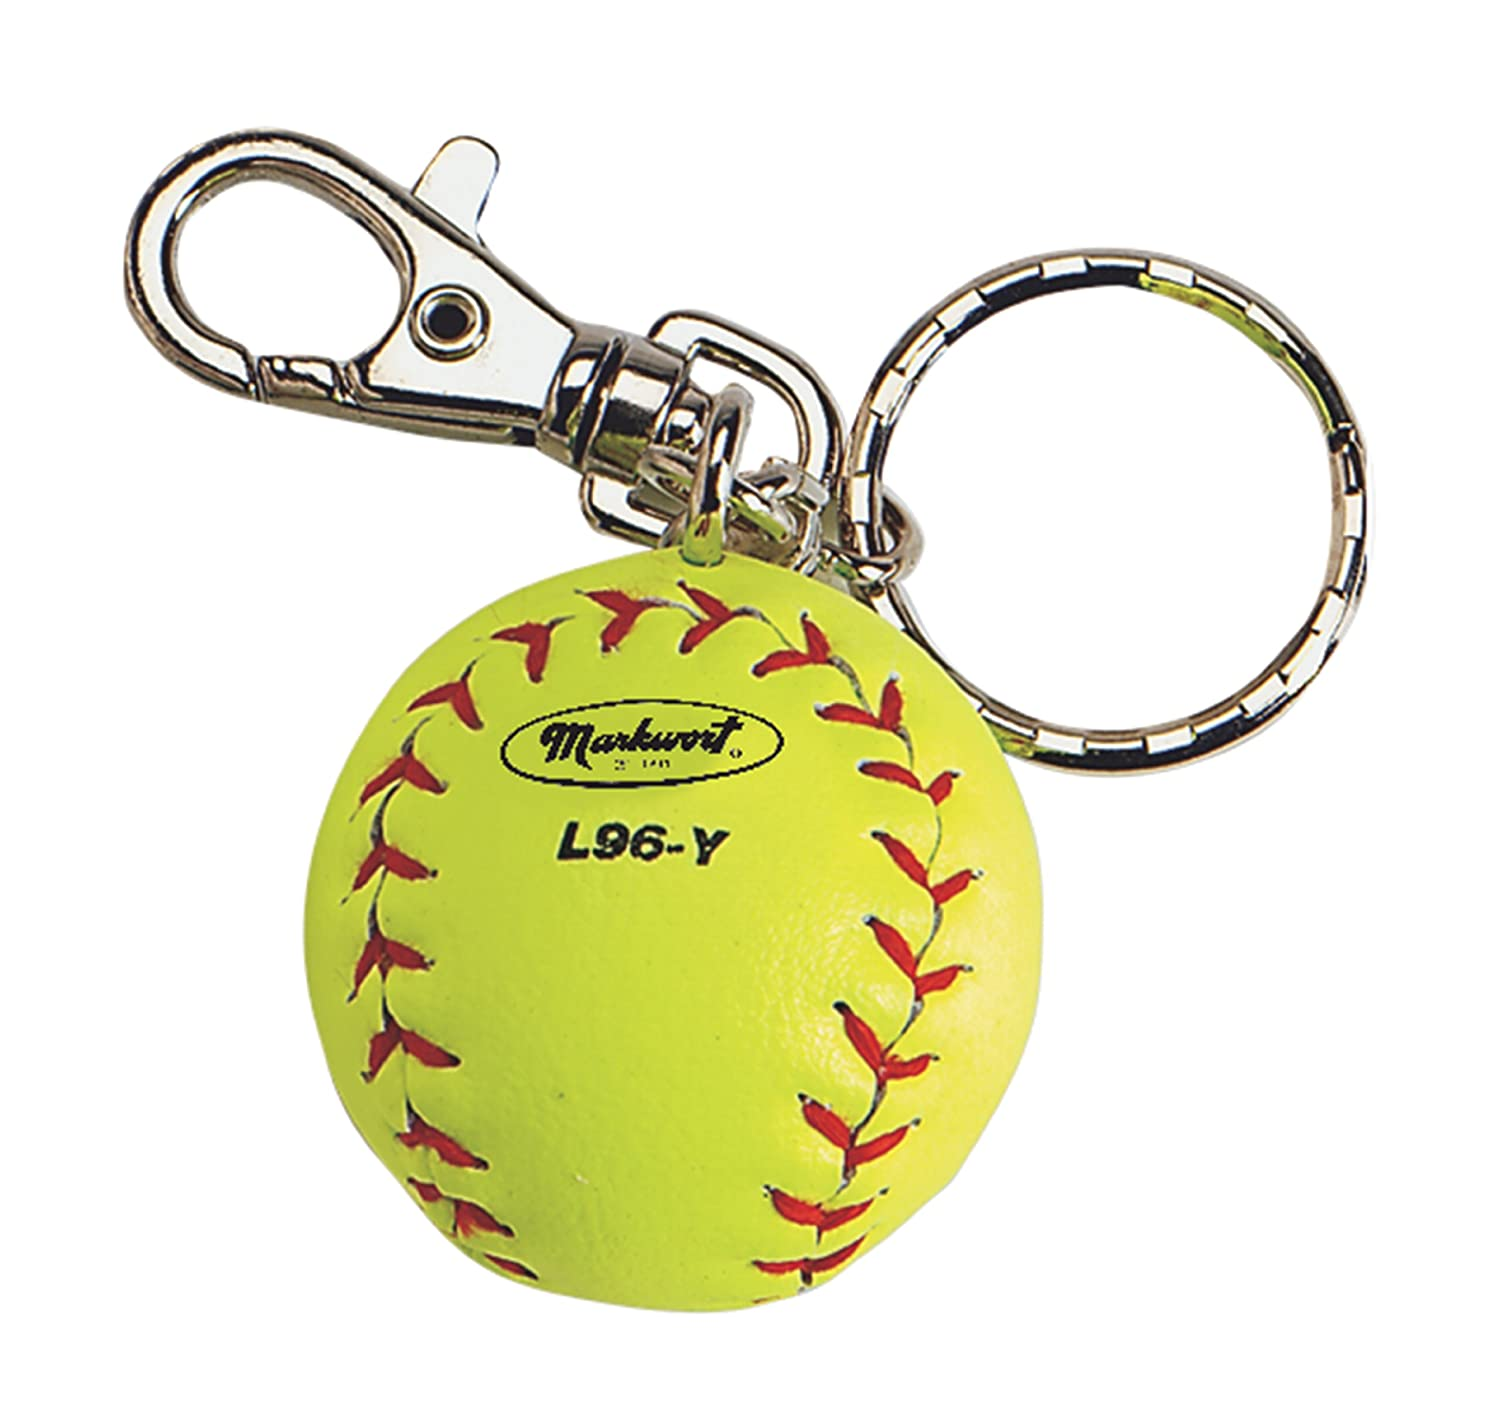 Markwort Baseball Miniature Key Ring-Box of 12 (Yellow) MIL96-Y